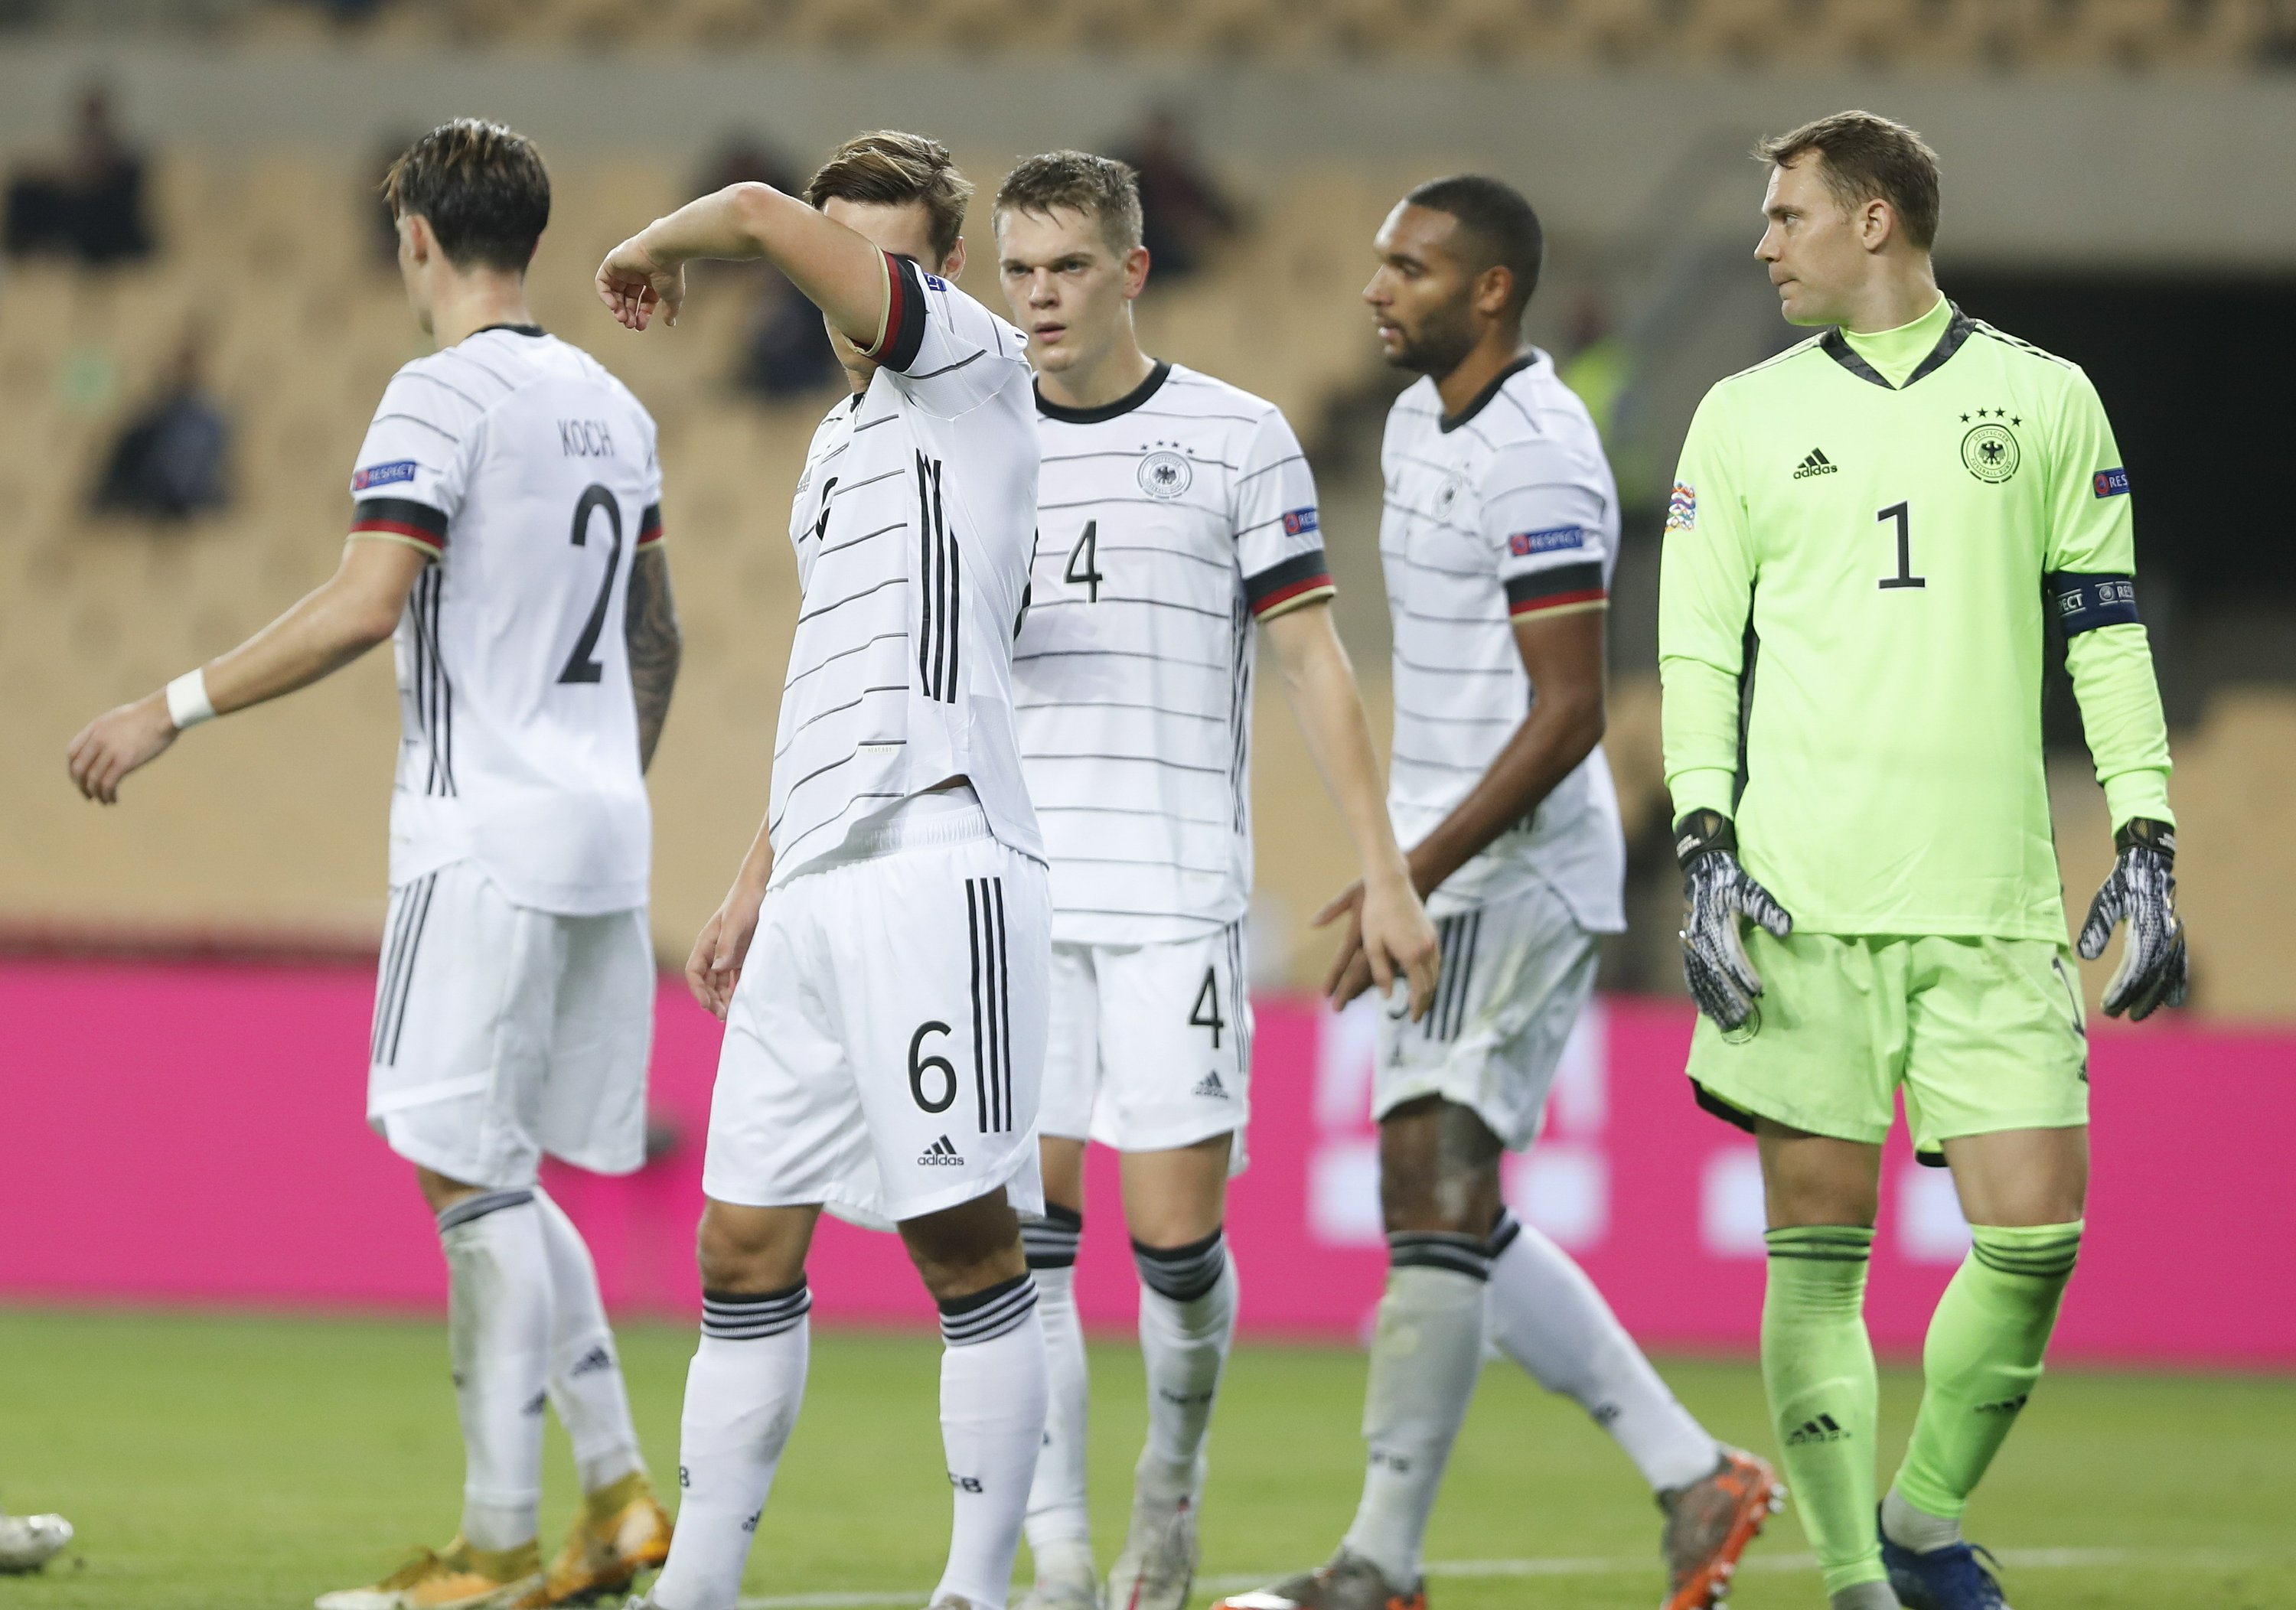 Germany's 6-0 loss in Spain confirms national team's decline